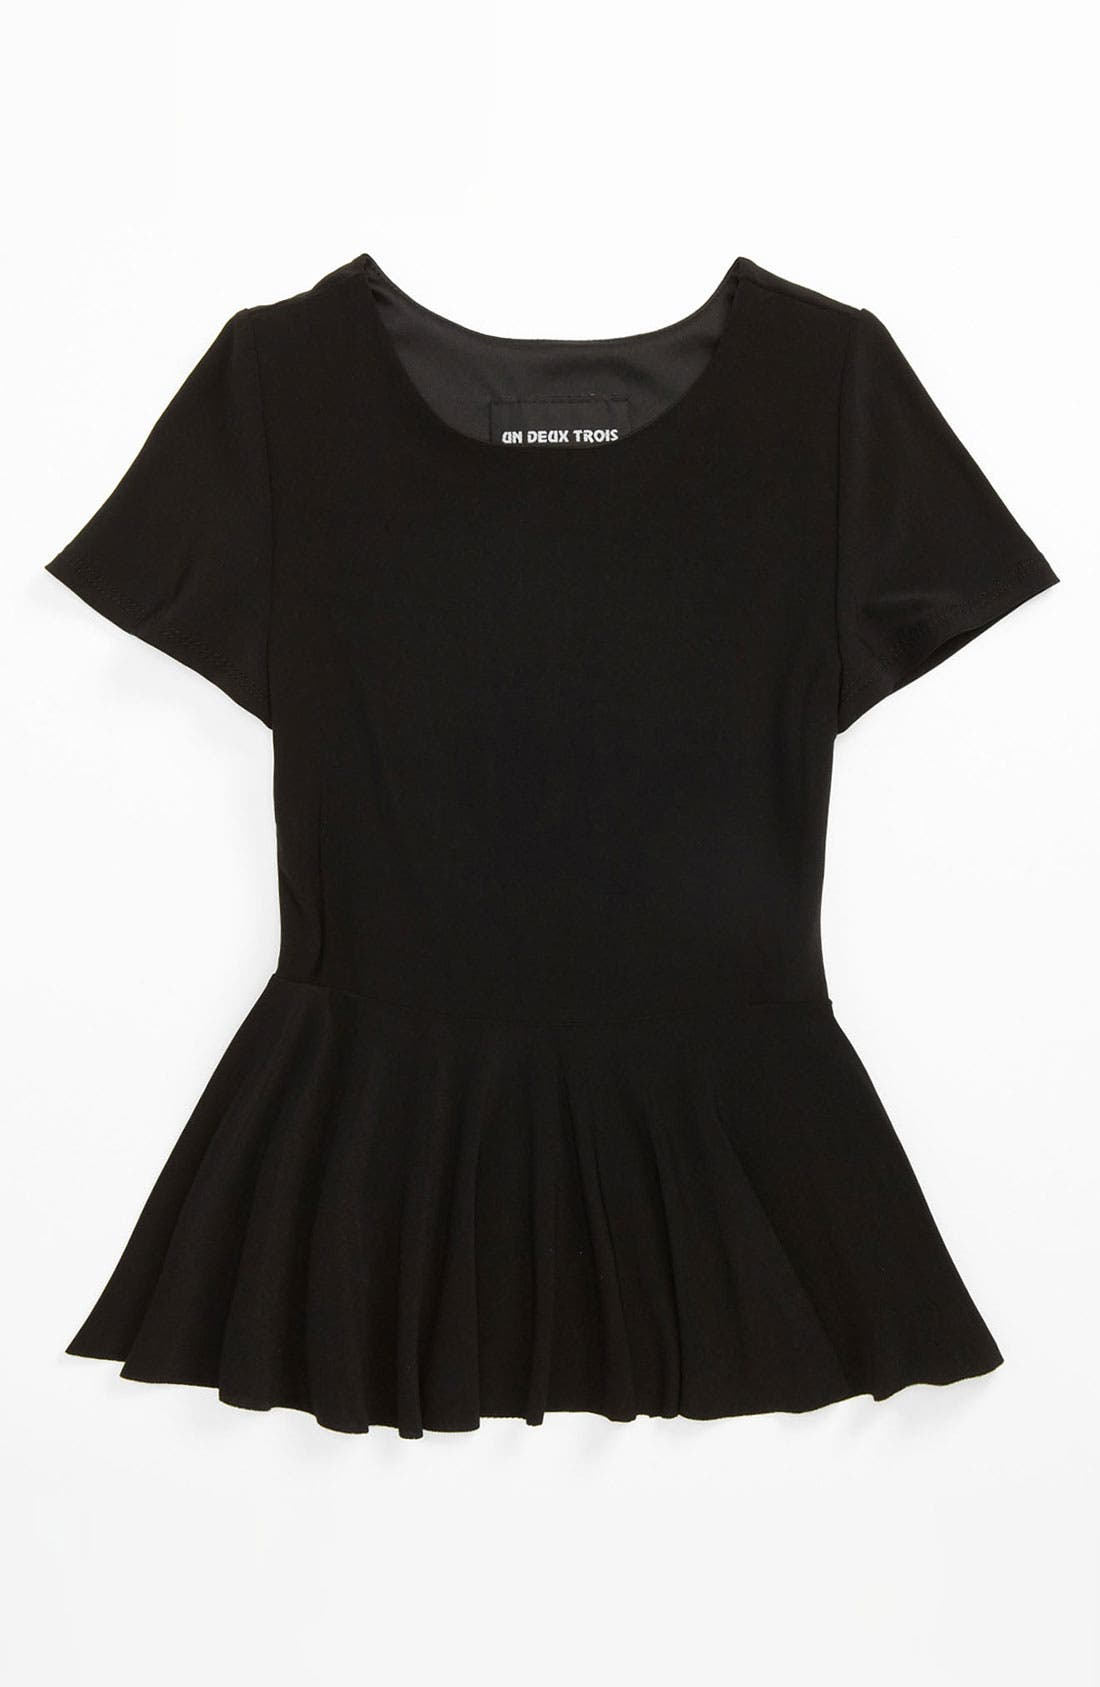 Alternate Image 1 Selected - Un Deux Trois Short Sleeve Peplum Top (Big Girls)